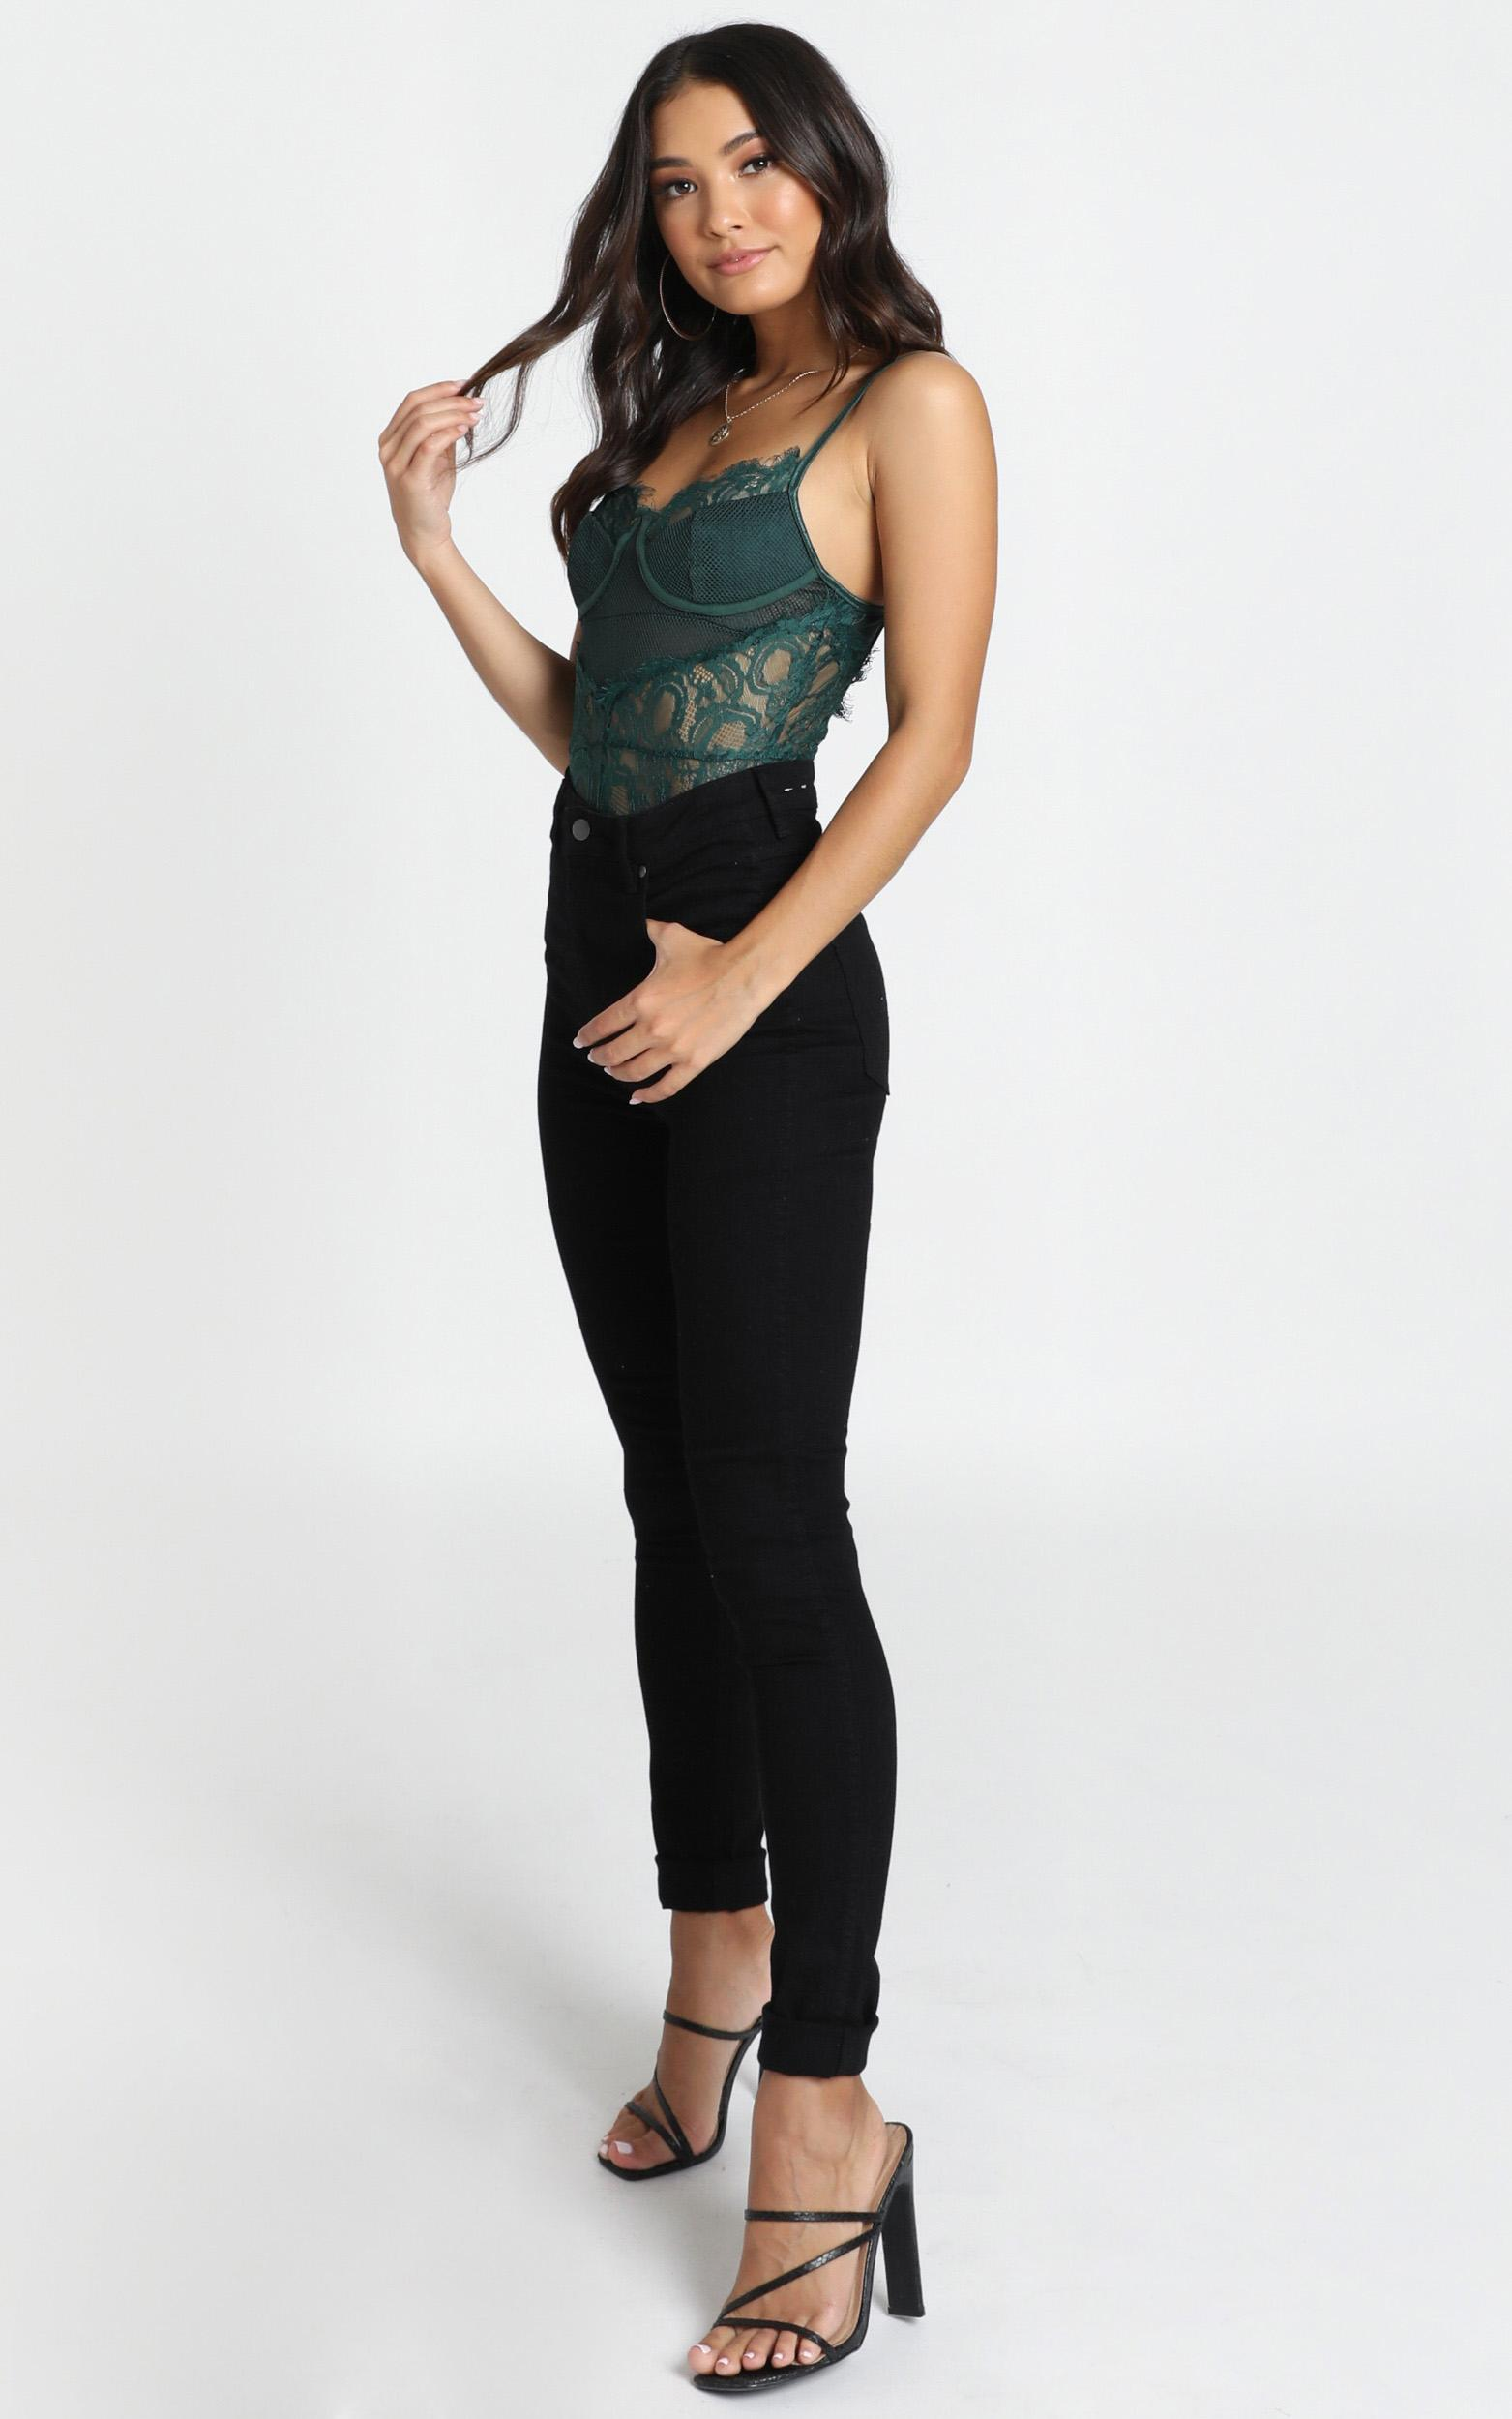 Voicemail Bodysuit in emerald lace - 14 (XL), Green, hi-res image number null